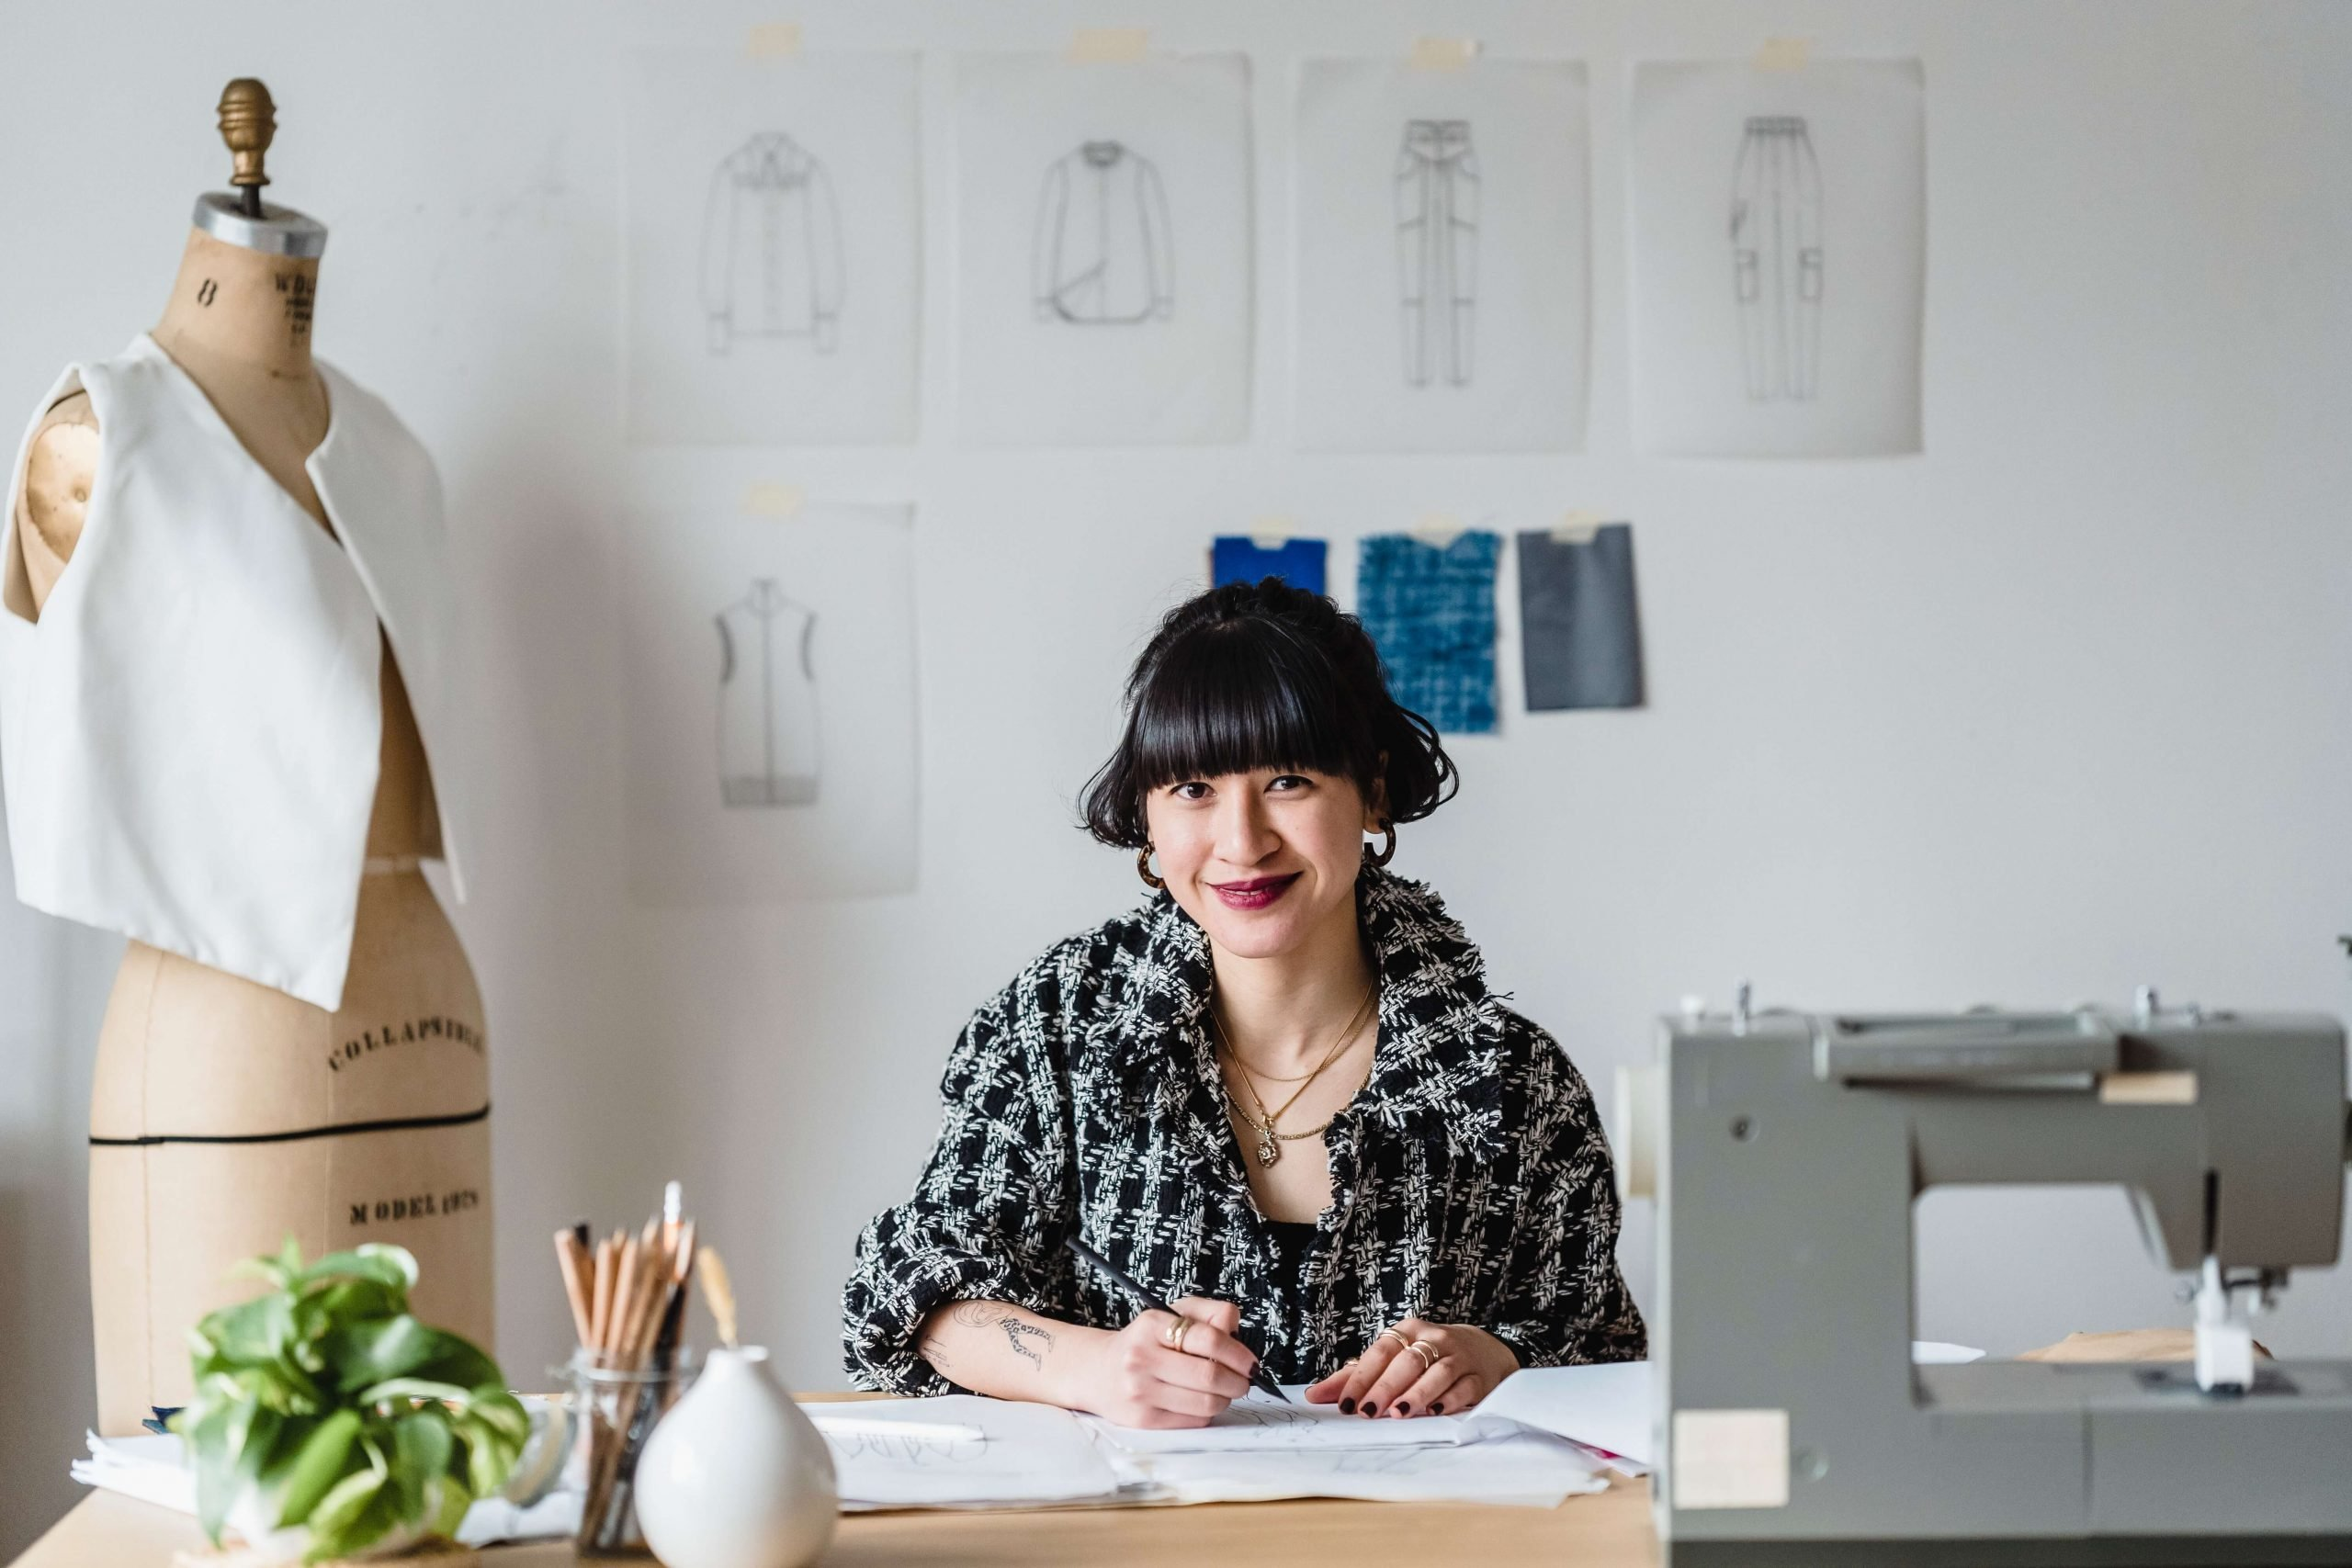 woman working on a desk smiling